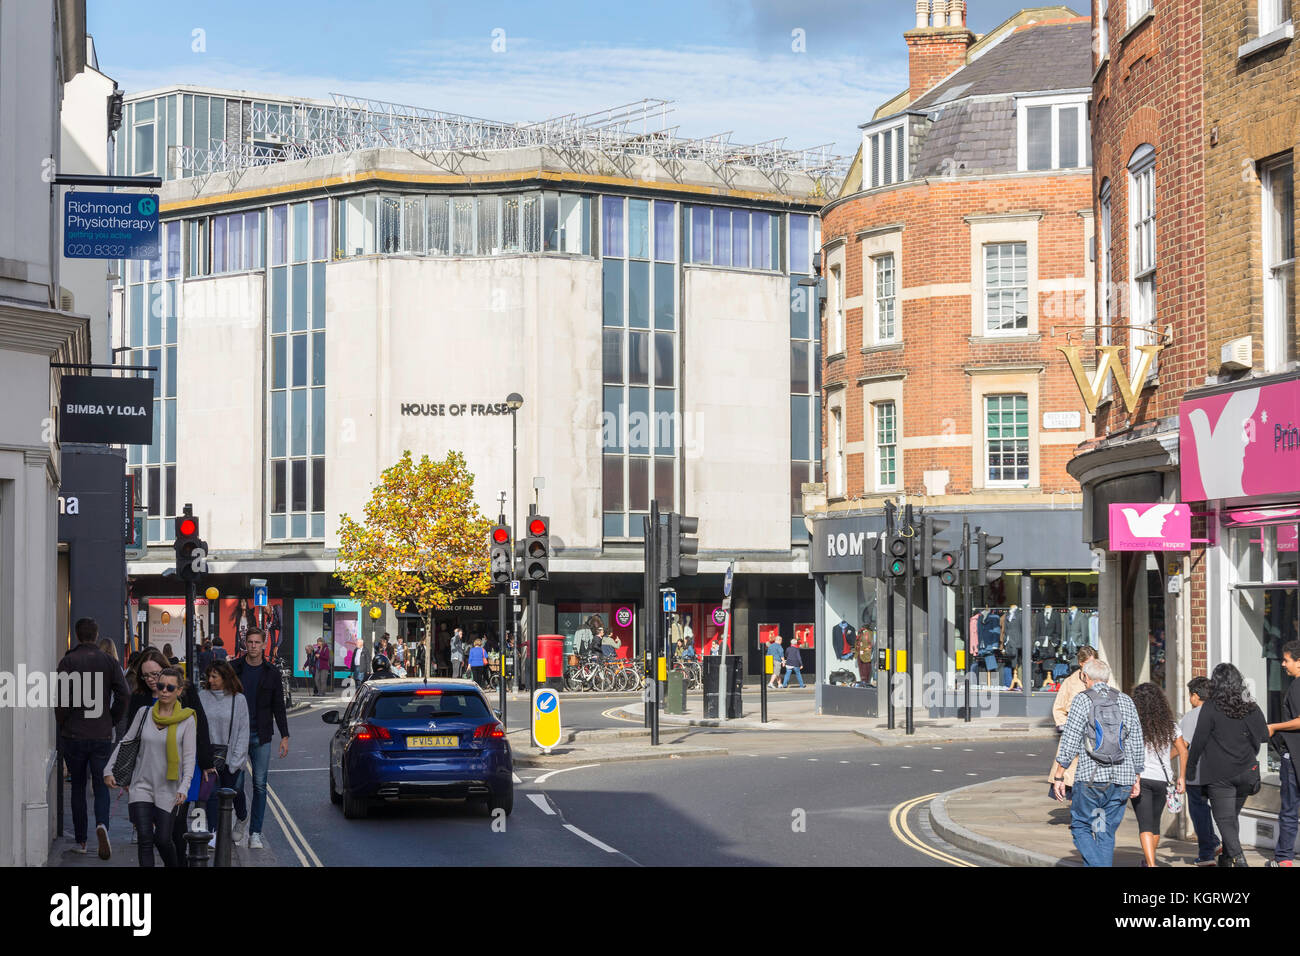 House of Fraser department store from Hill Street, Richmond, London Borough of Richmond upon Thames, Greater London, - Stock Image